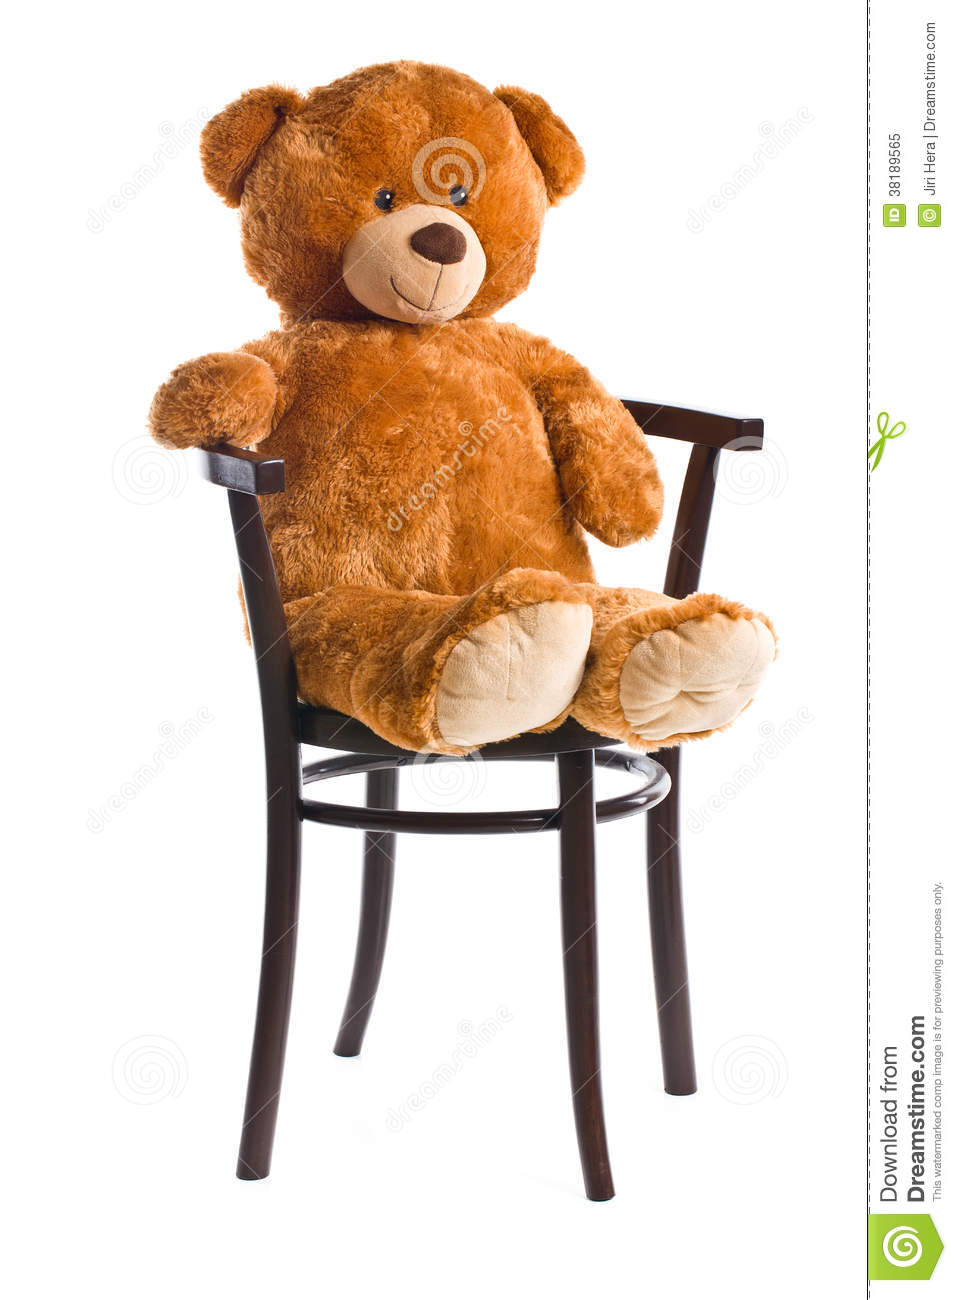 Teddy Bear Sitting On A Chair Royalty Free Stock Photo